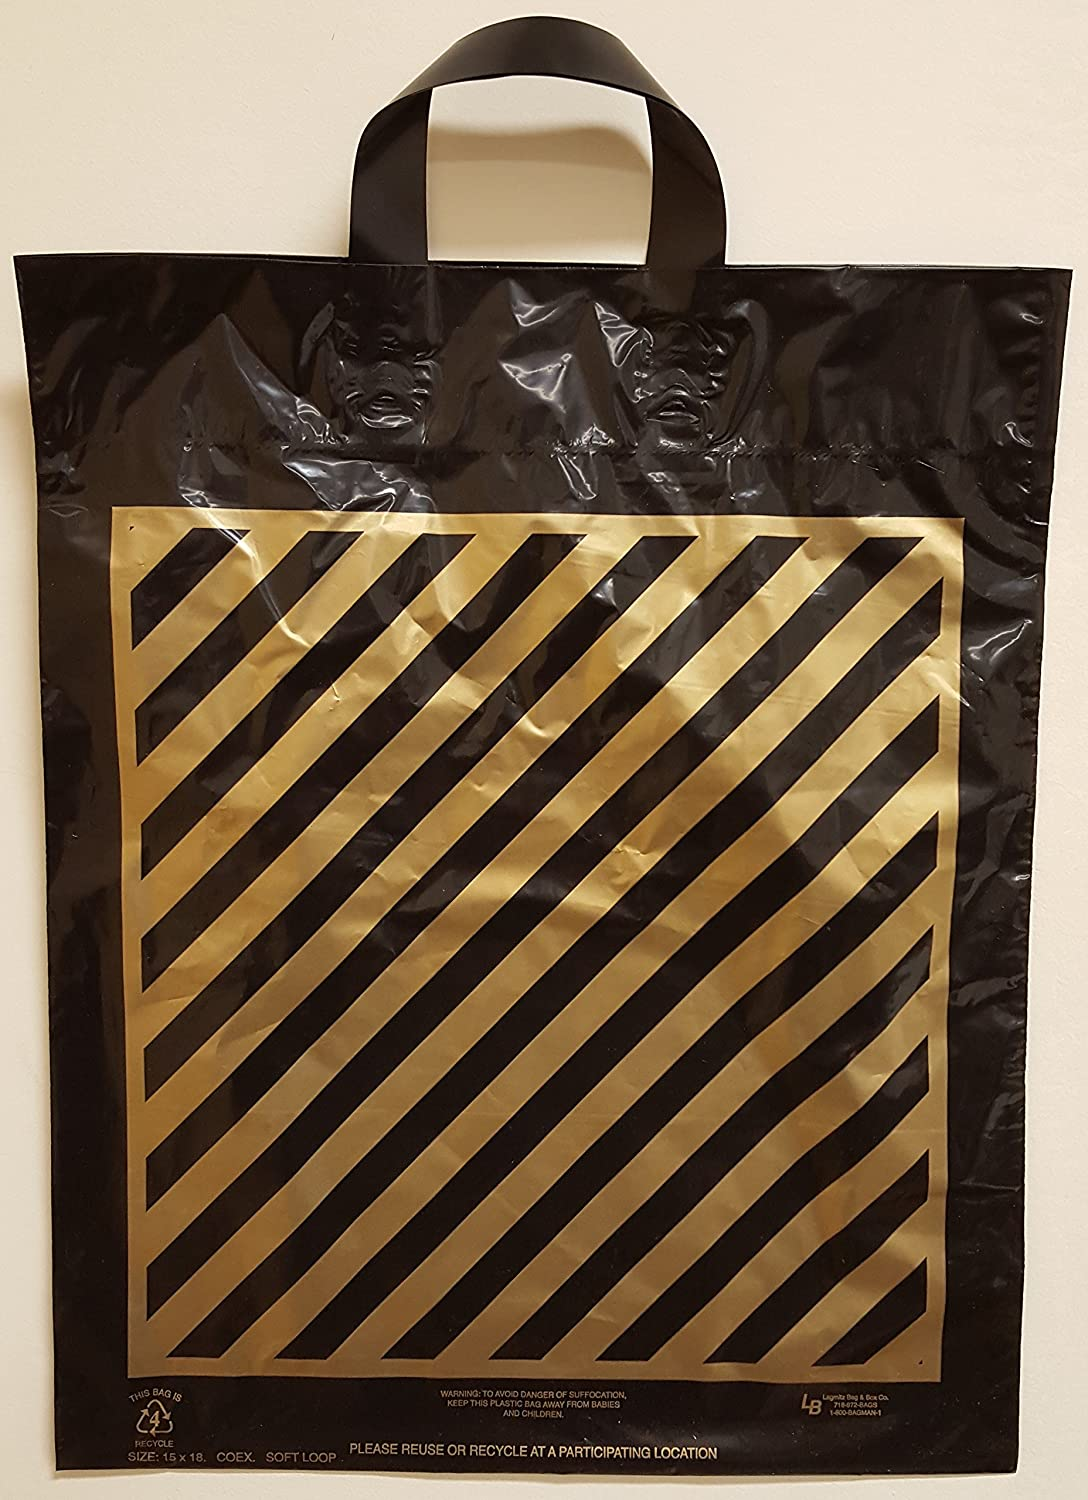 """WOW..1 penny Shipping!!!""- 100 Large size Bags, Size:15x18, Black with Gold Stripes Flexi-Loop Handle Plastic Shopping Bags, $31.99 per 100, 31.9 cents per bag."